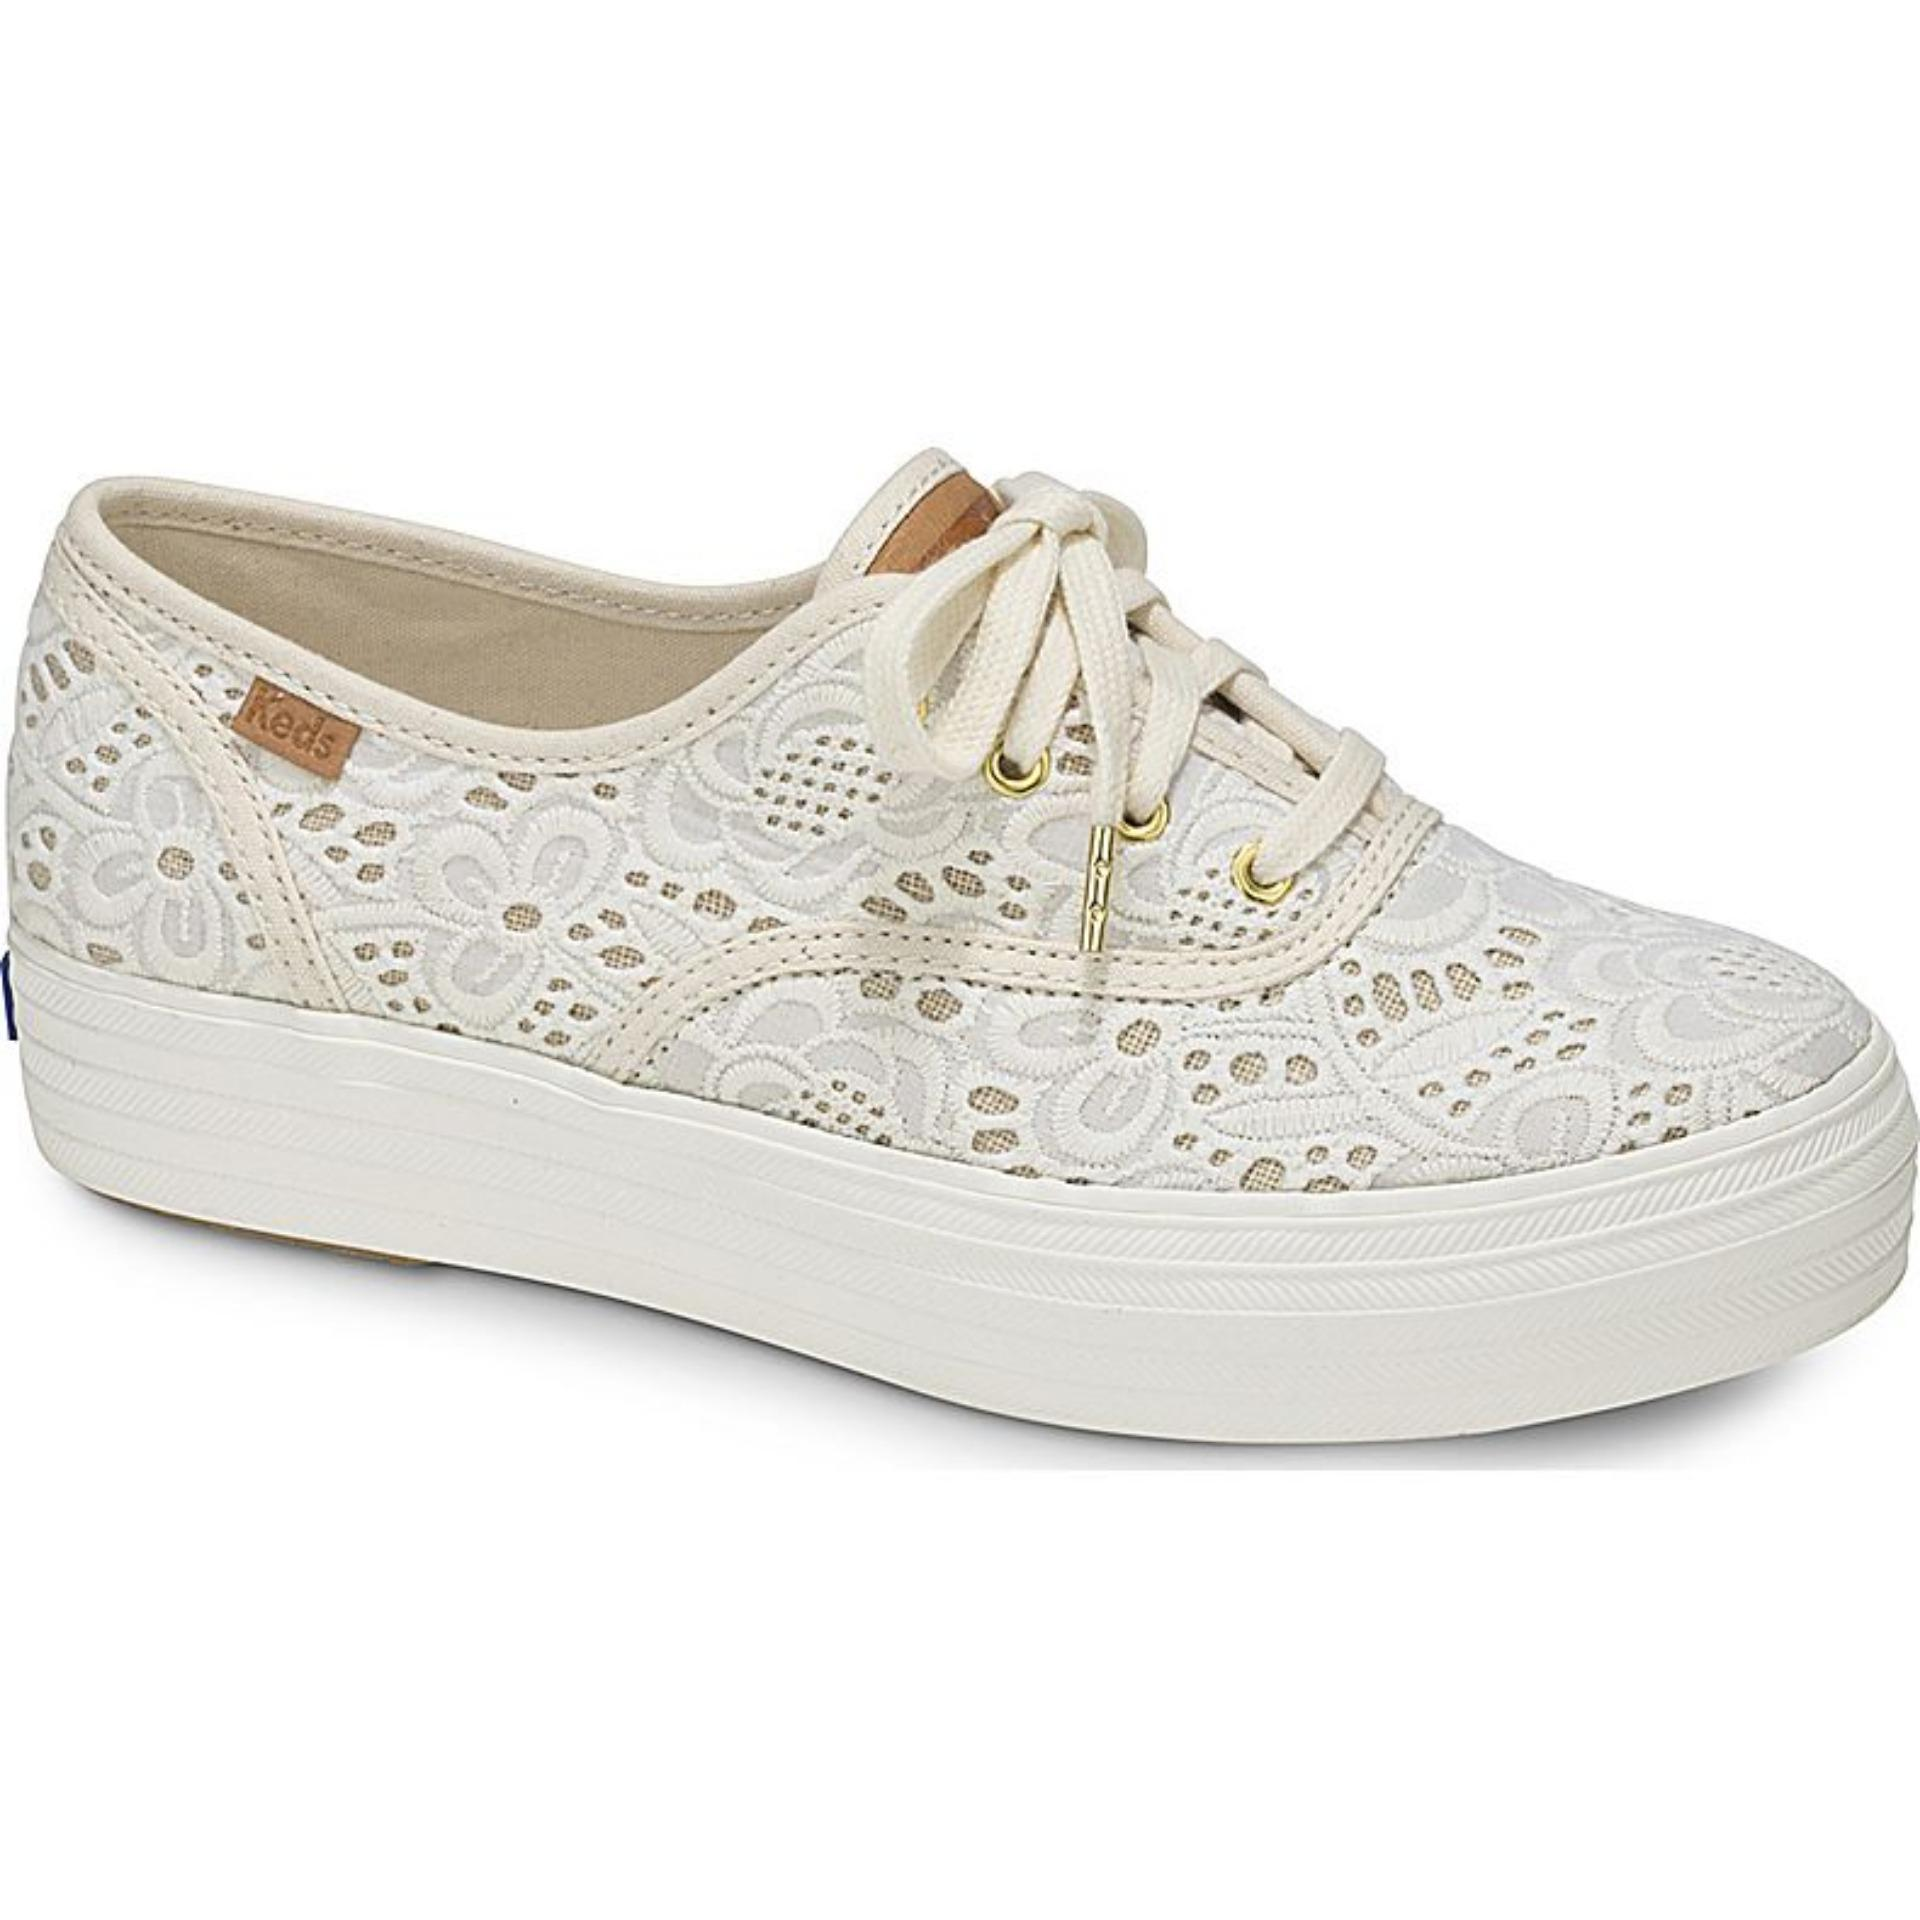 Keds Triple Emroidered Crochet Sneakers Wf58028 Free Shipping